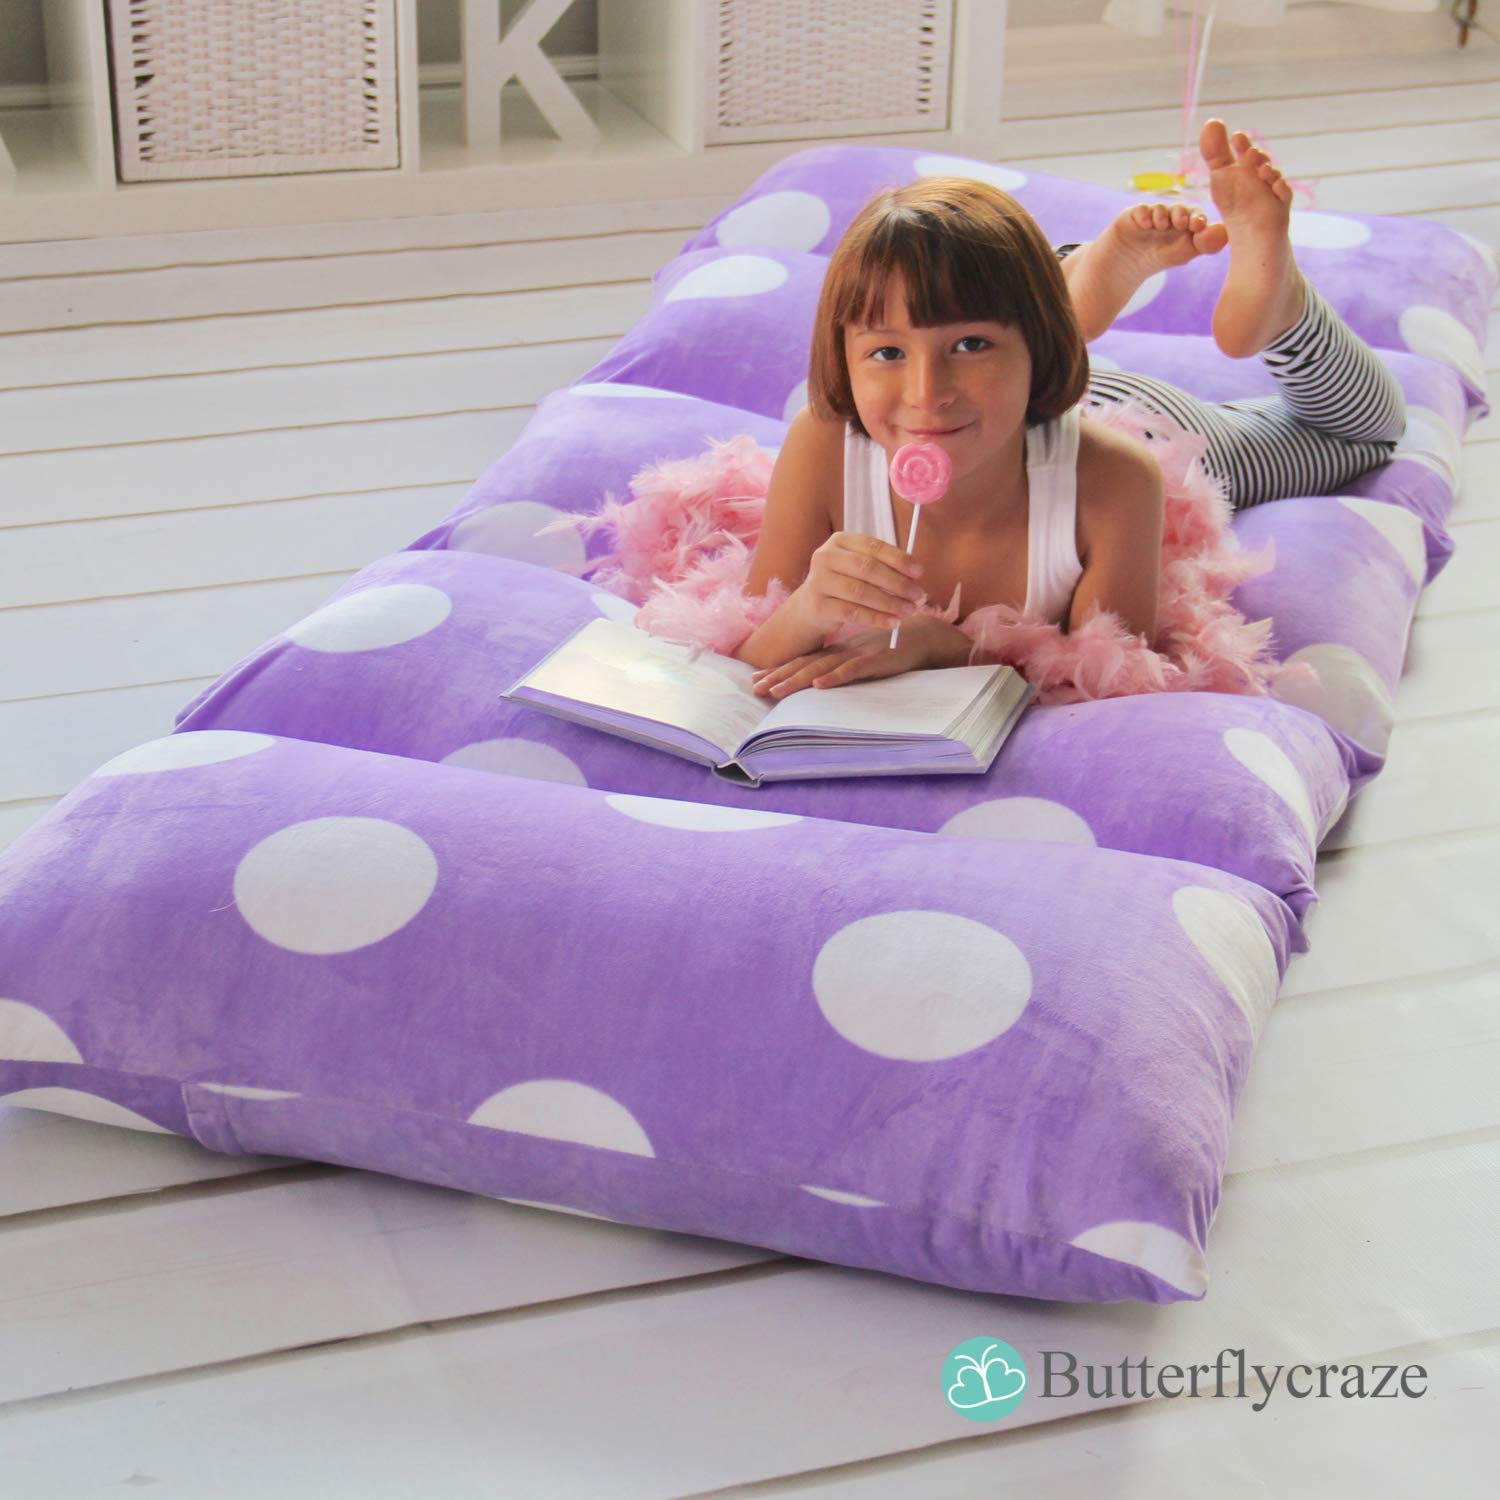 butterfly craze girl s floor lounger seats cover and pillow cover made of super soft luxurious premium plush fabric perfect reading and watching tv